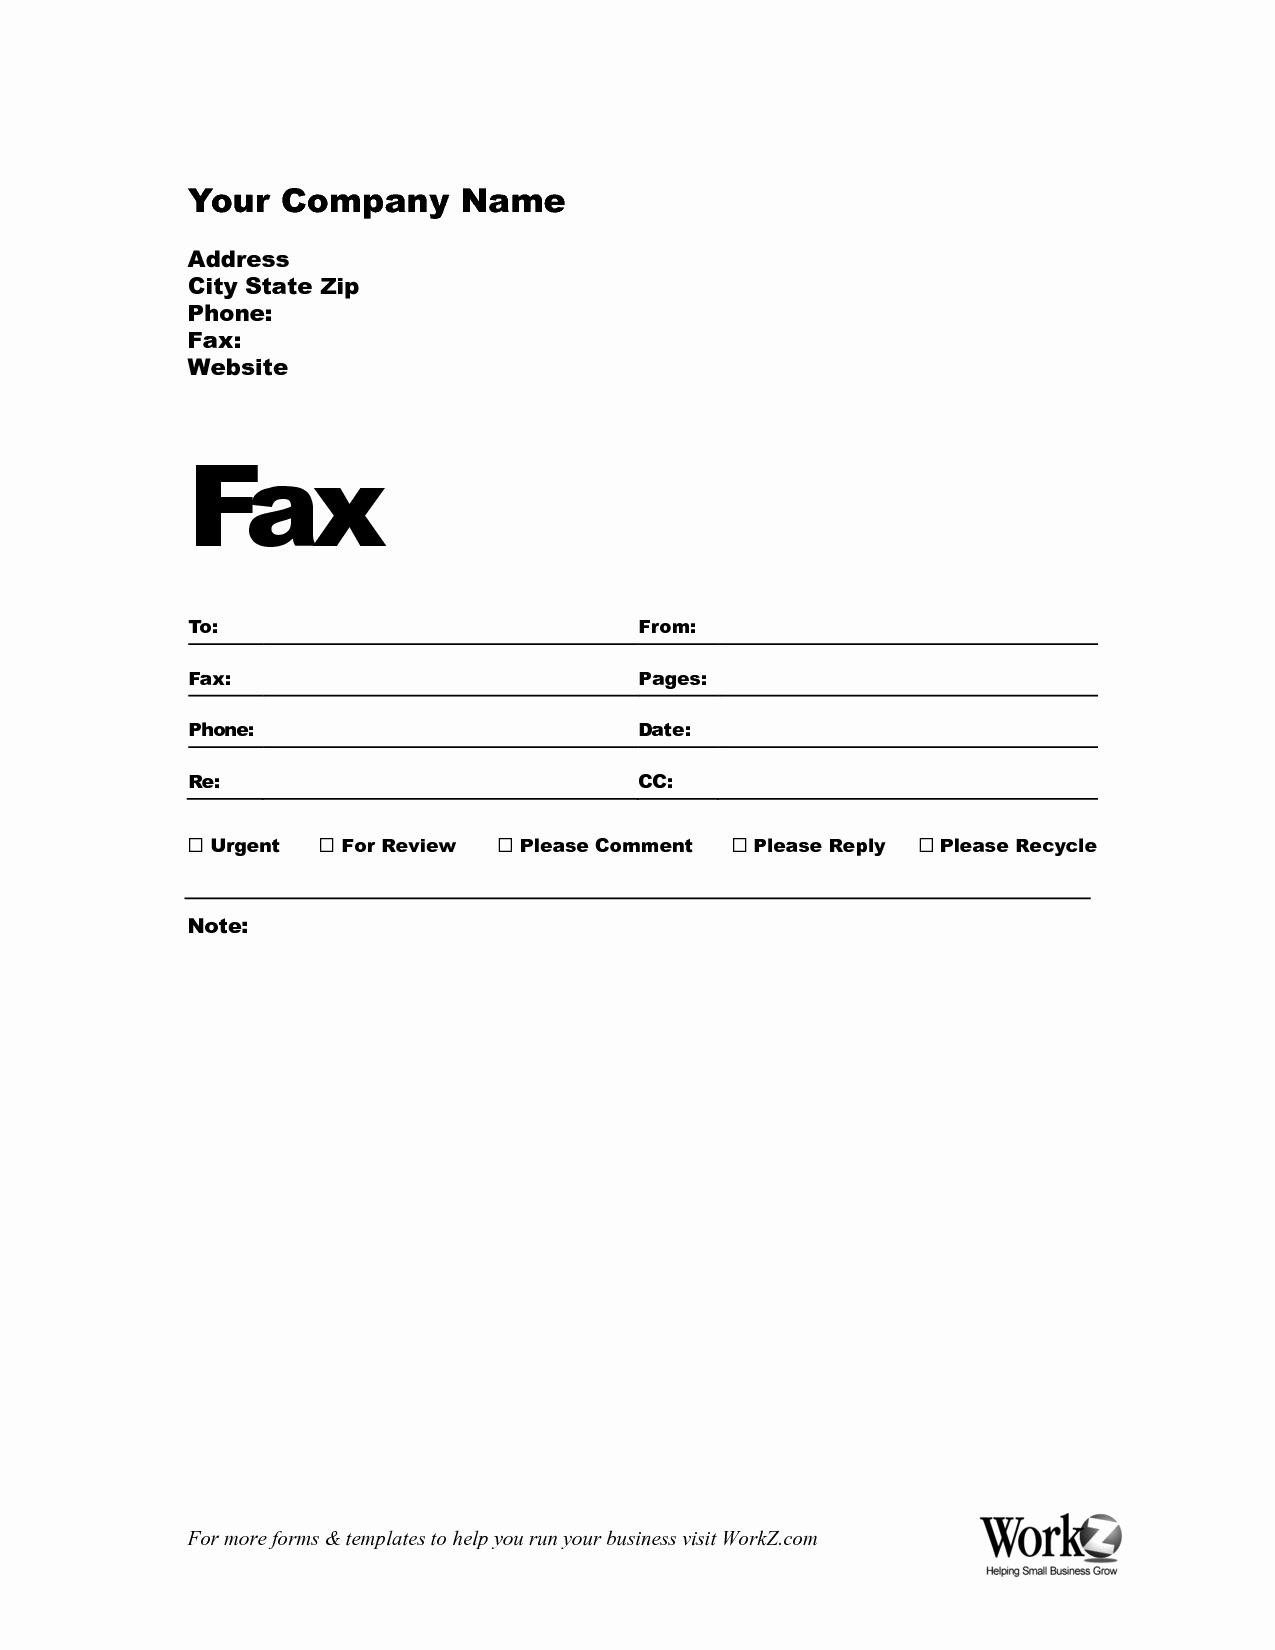 Cover Page for A Fax Inspirational Free Fax Cover Sheet Template Bamboodownunder